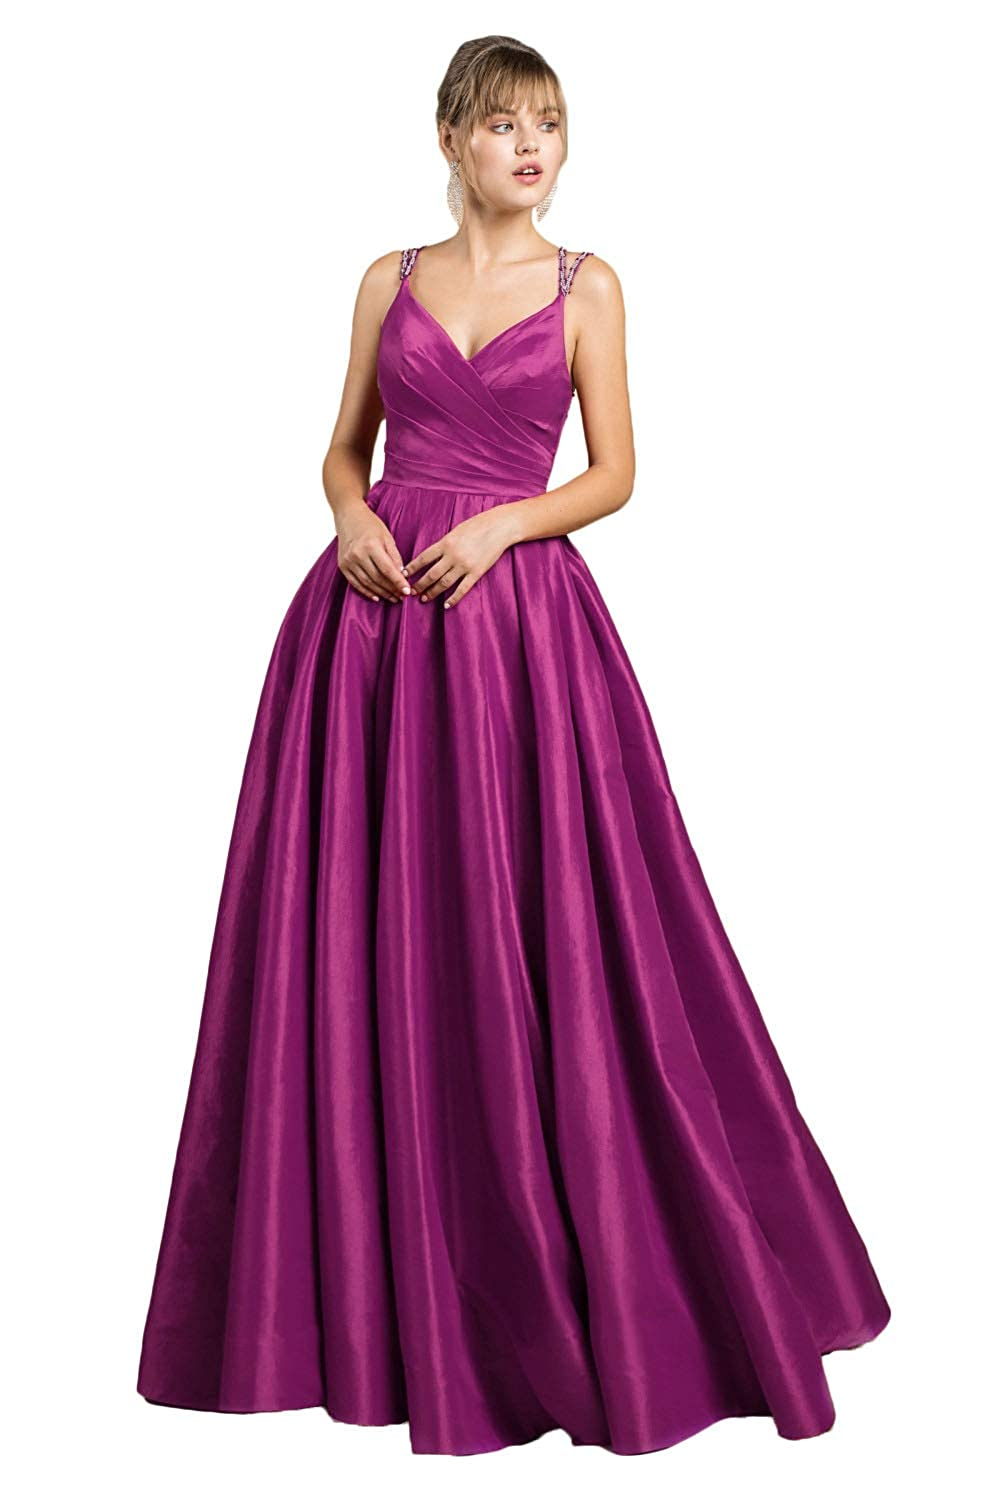 Fuchsia Yakey 2019 VNeck Long Prom Dresses for Girls Pleat Beading Straps Floor Length Evening Gowns